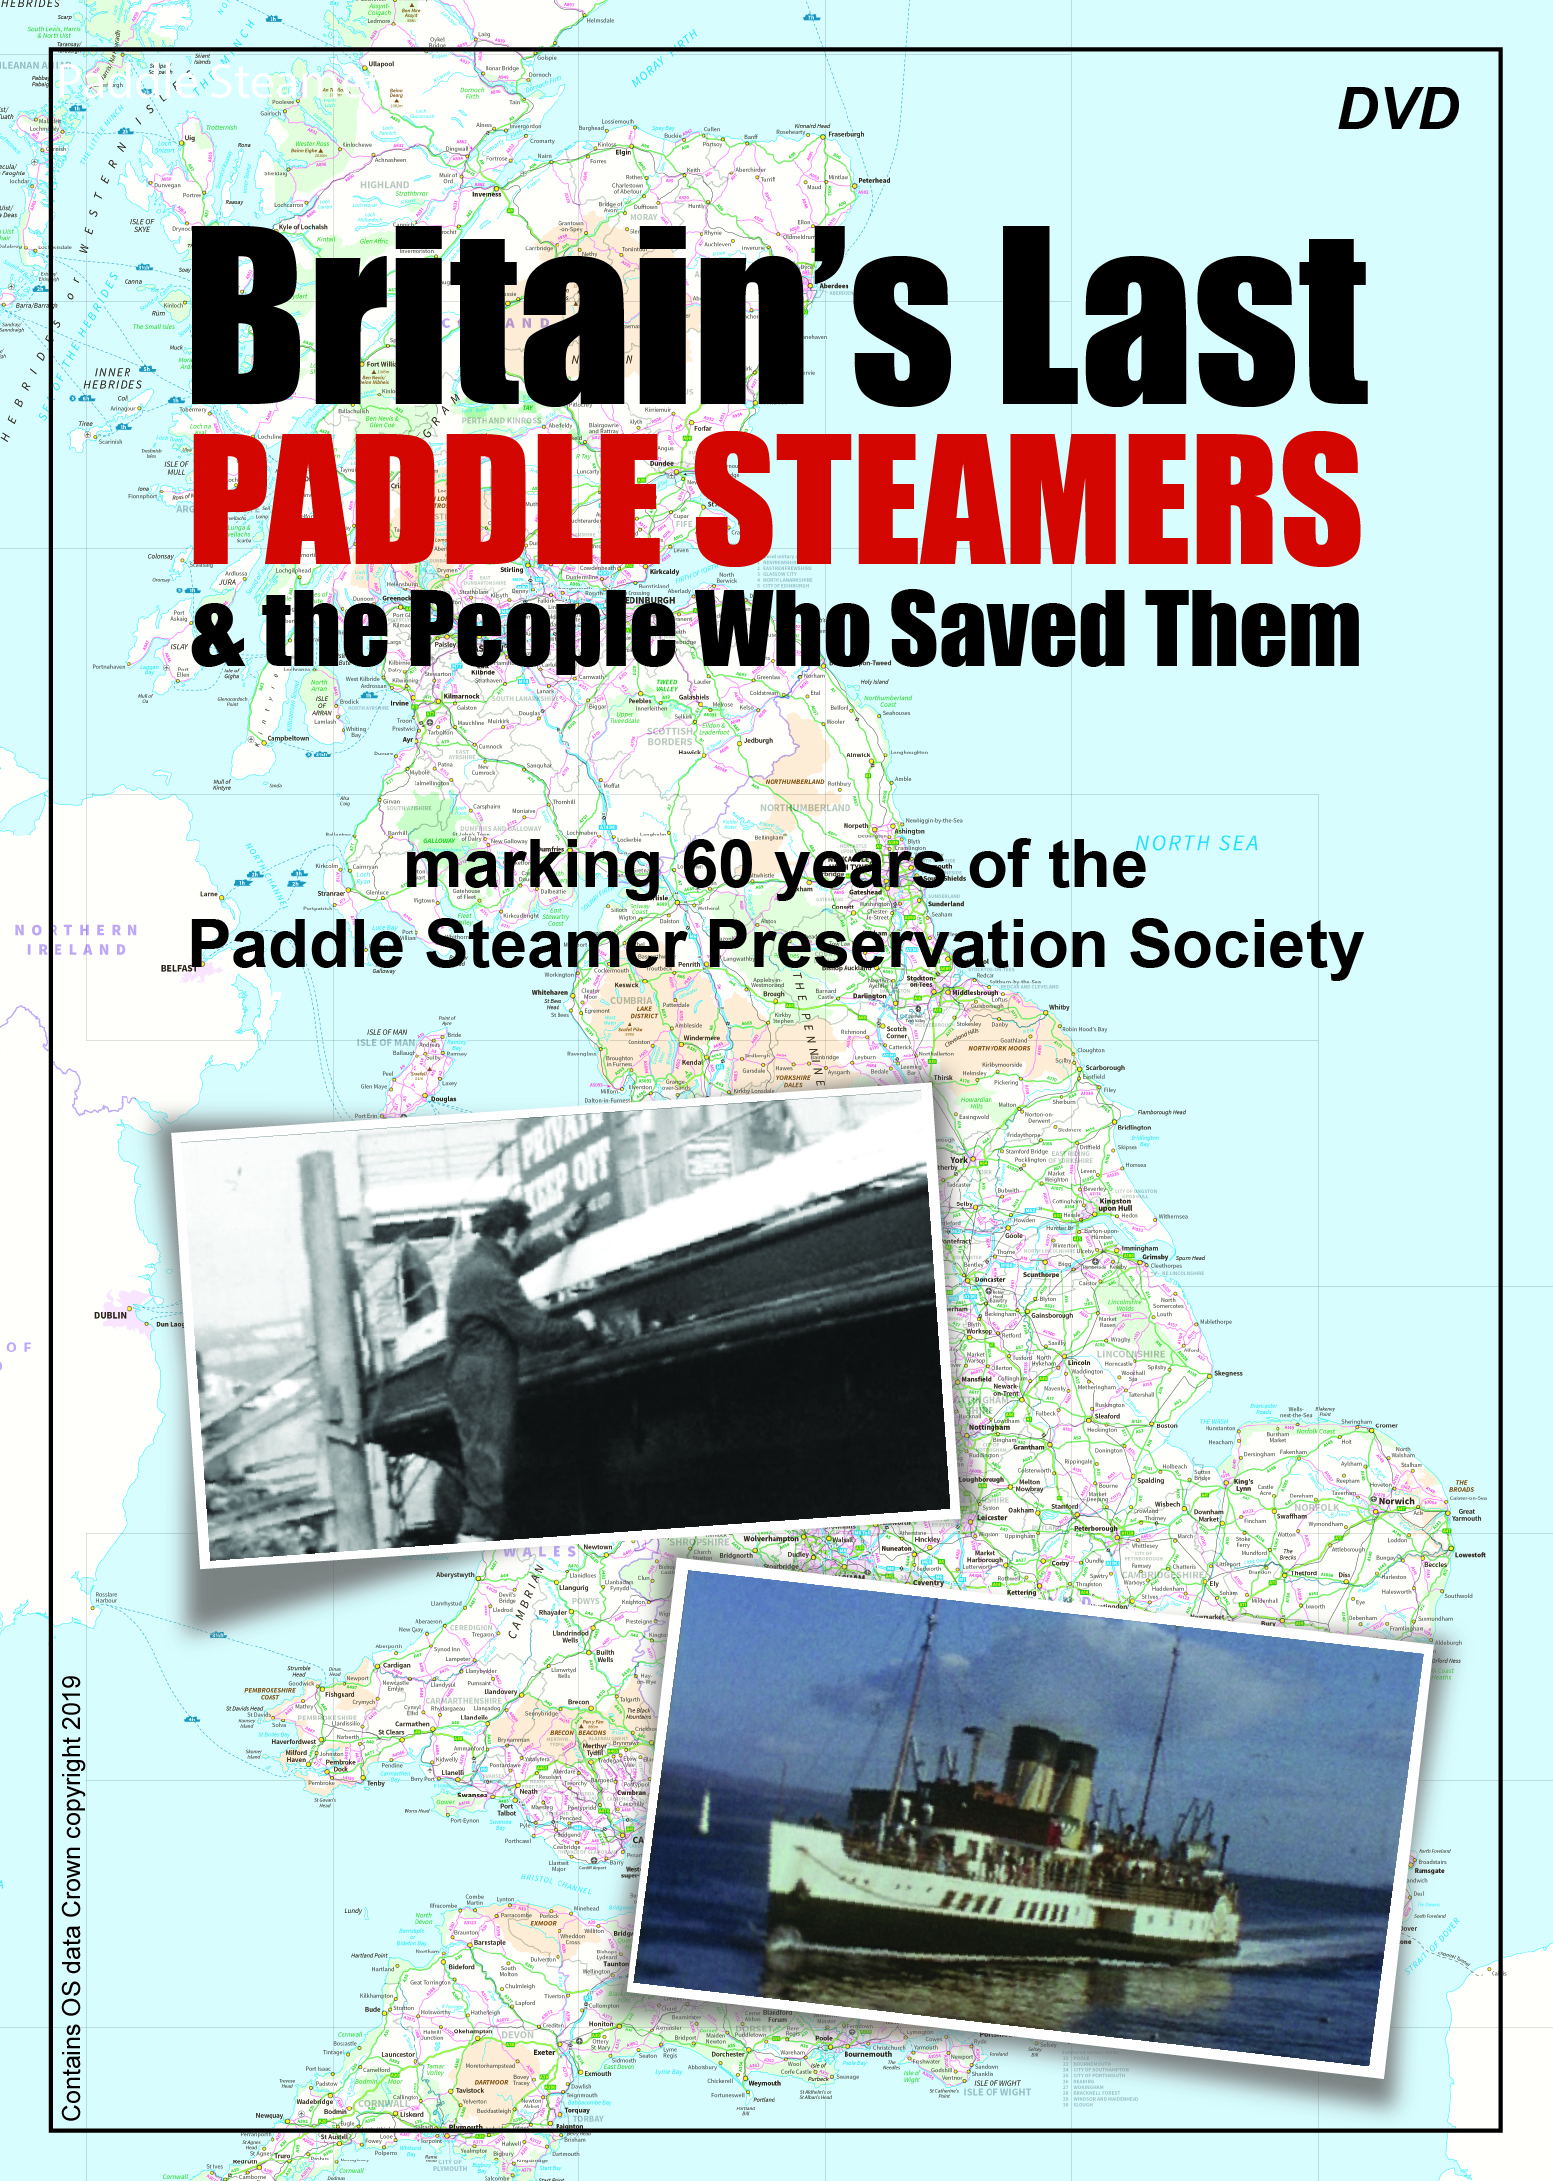 Britain's Last Paddle Steamers - available OnDemand and as a double DVD